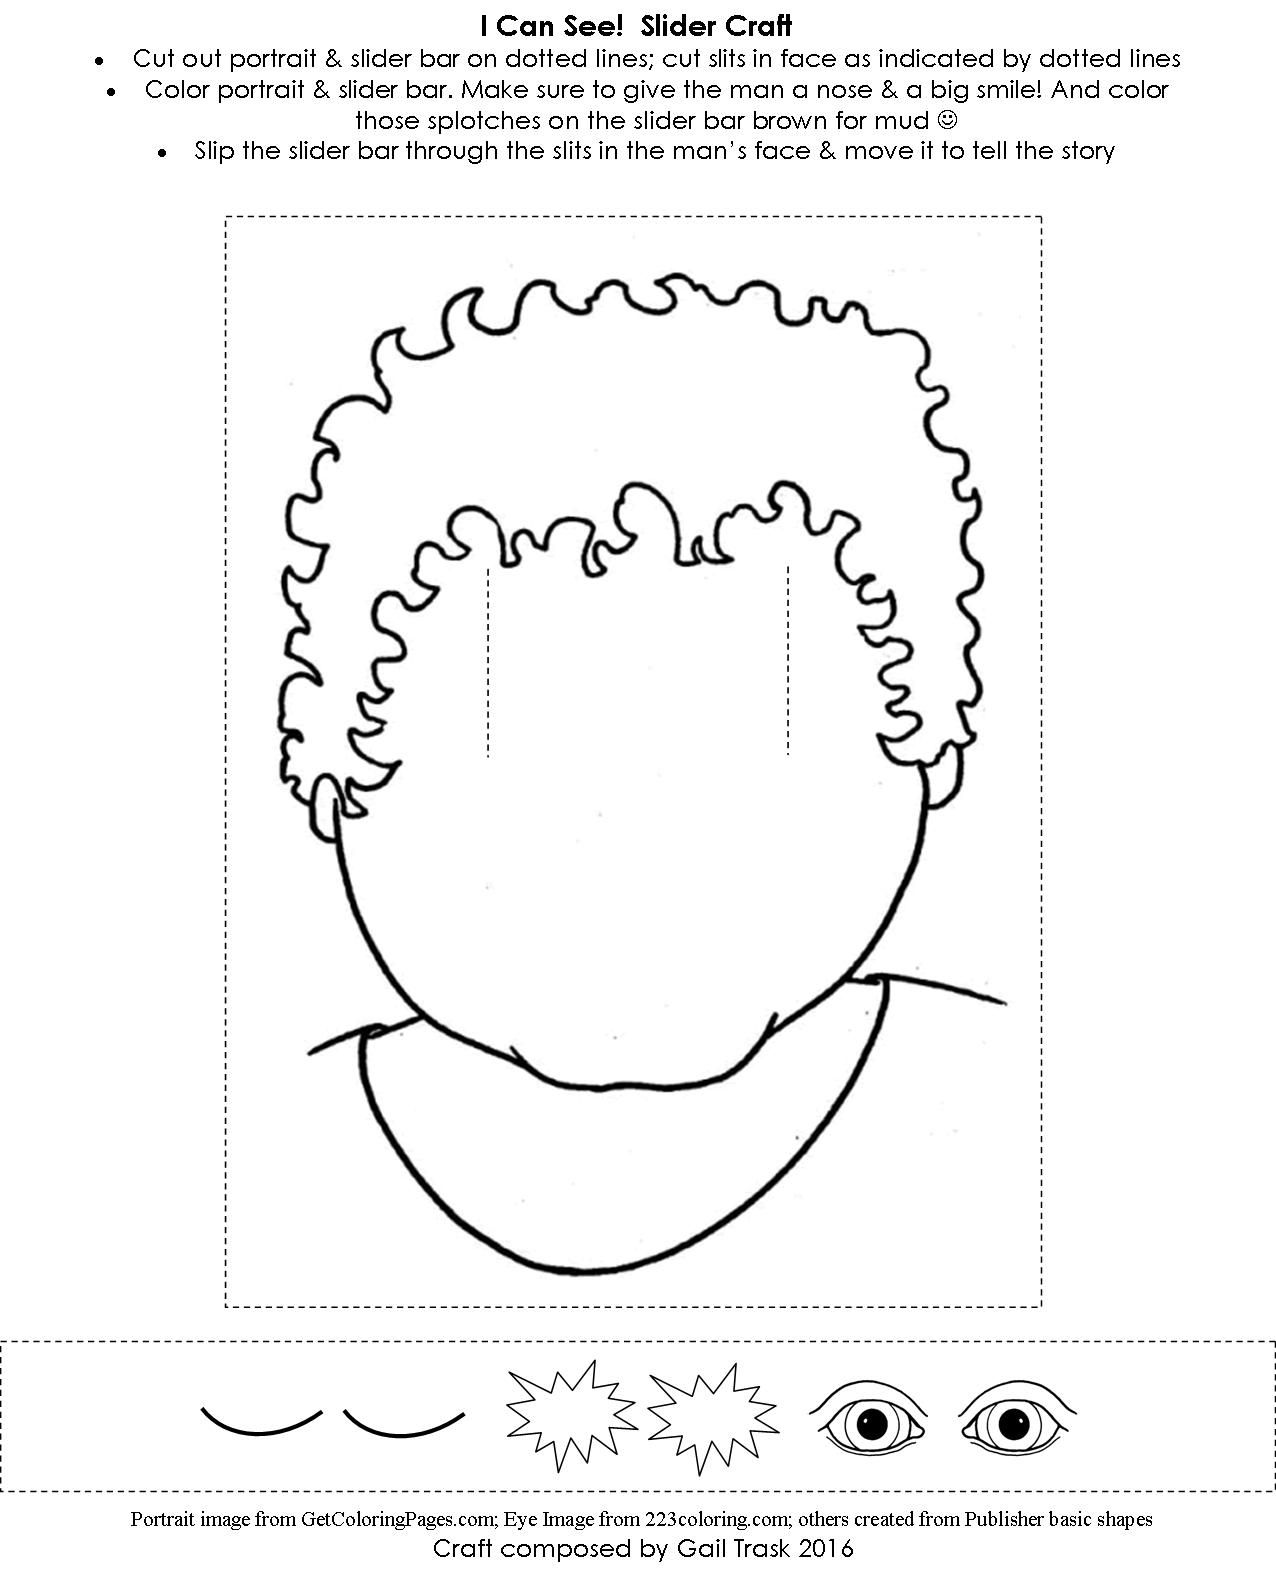 jesus heals bartimaeus coloring page - jesus heals the man born blind students can slide his